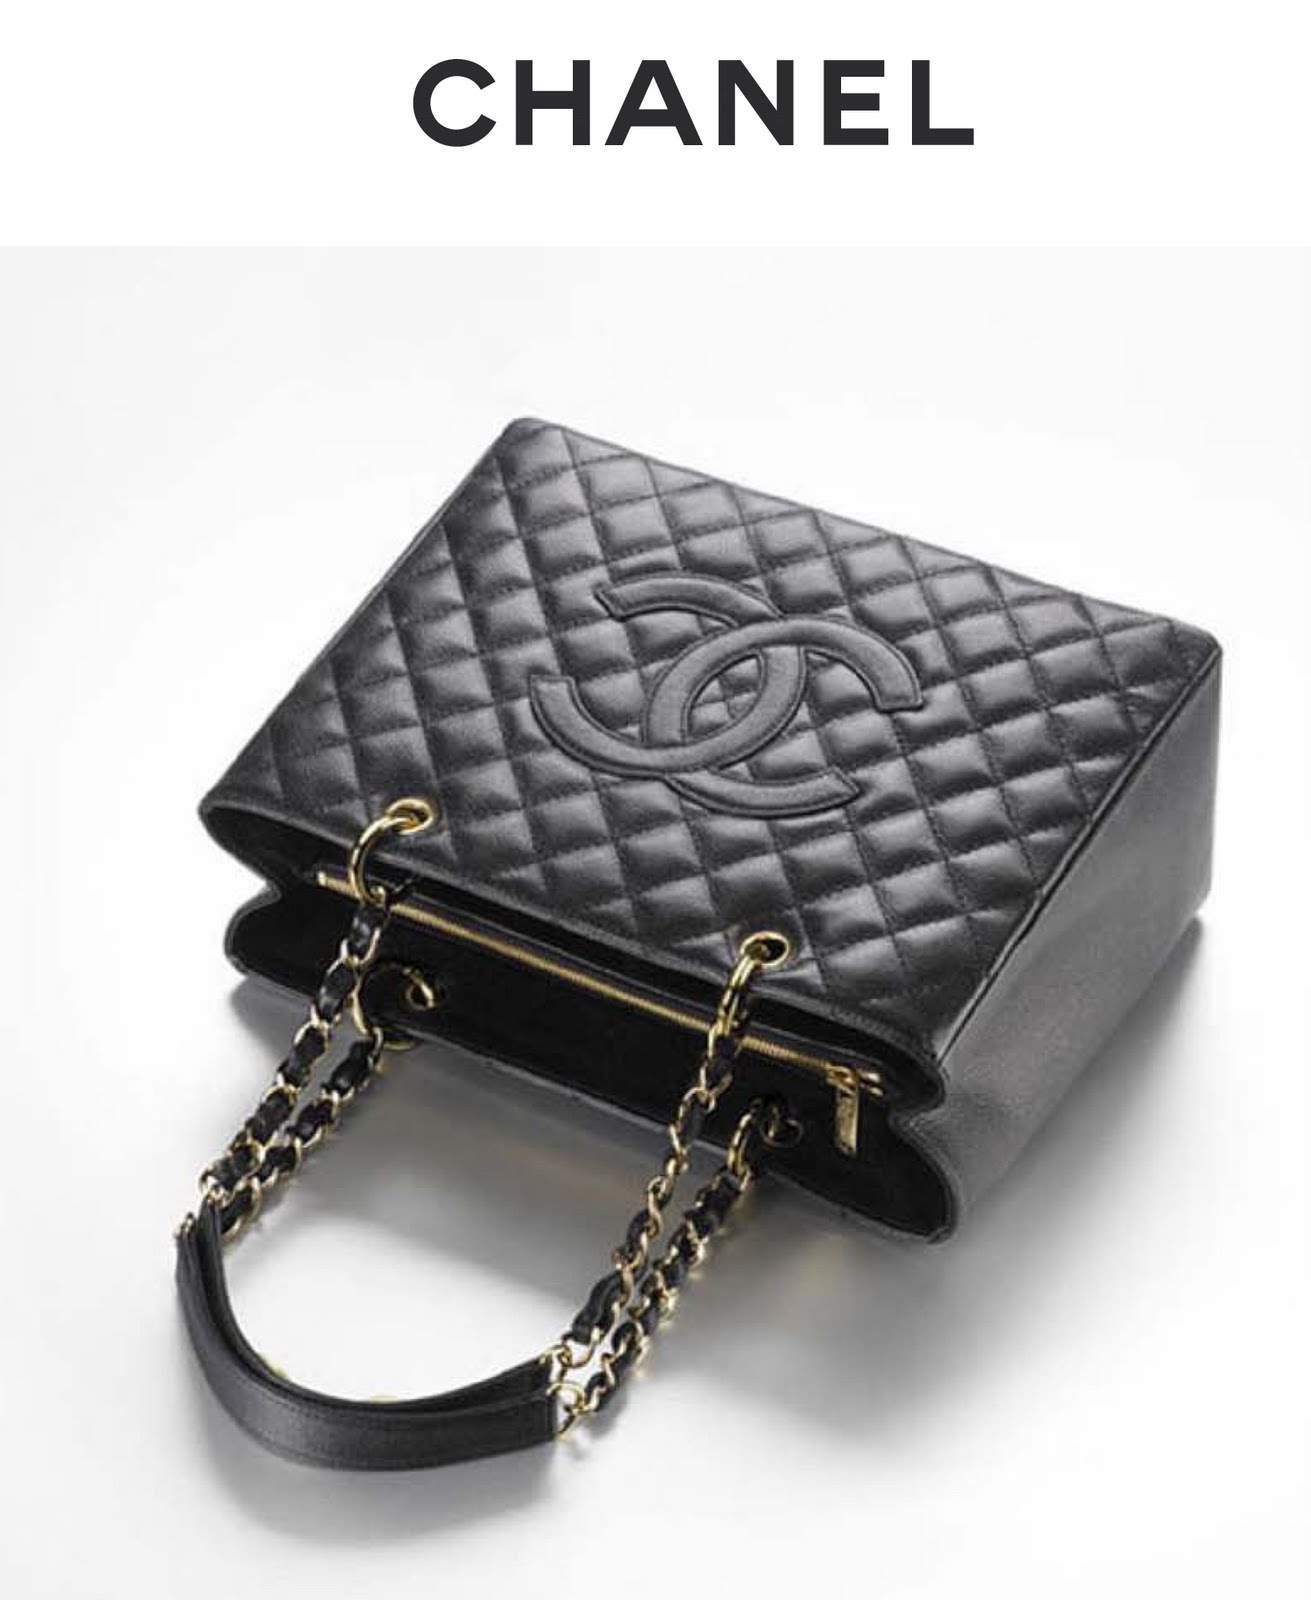 fashionwhatnot classic chanel quilted bag